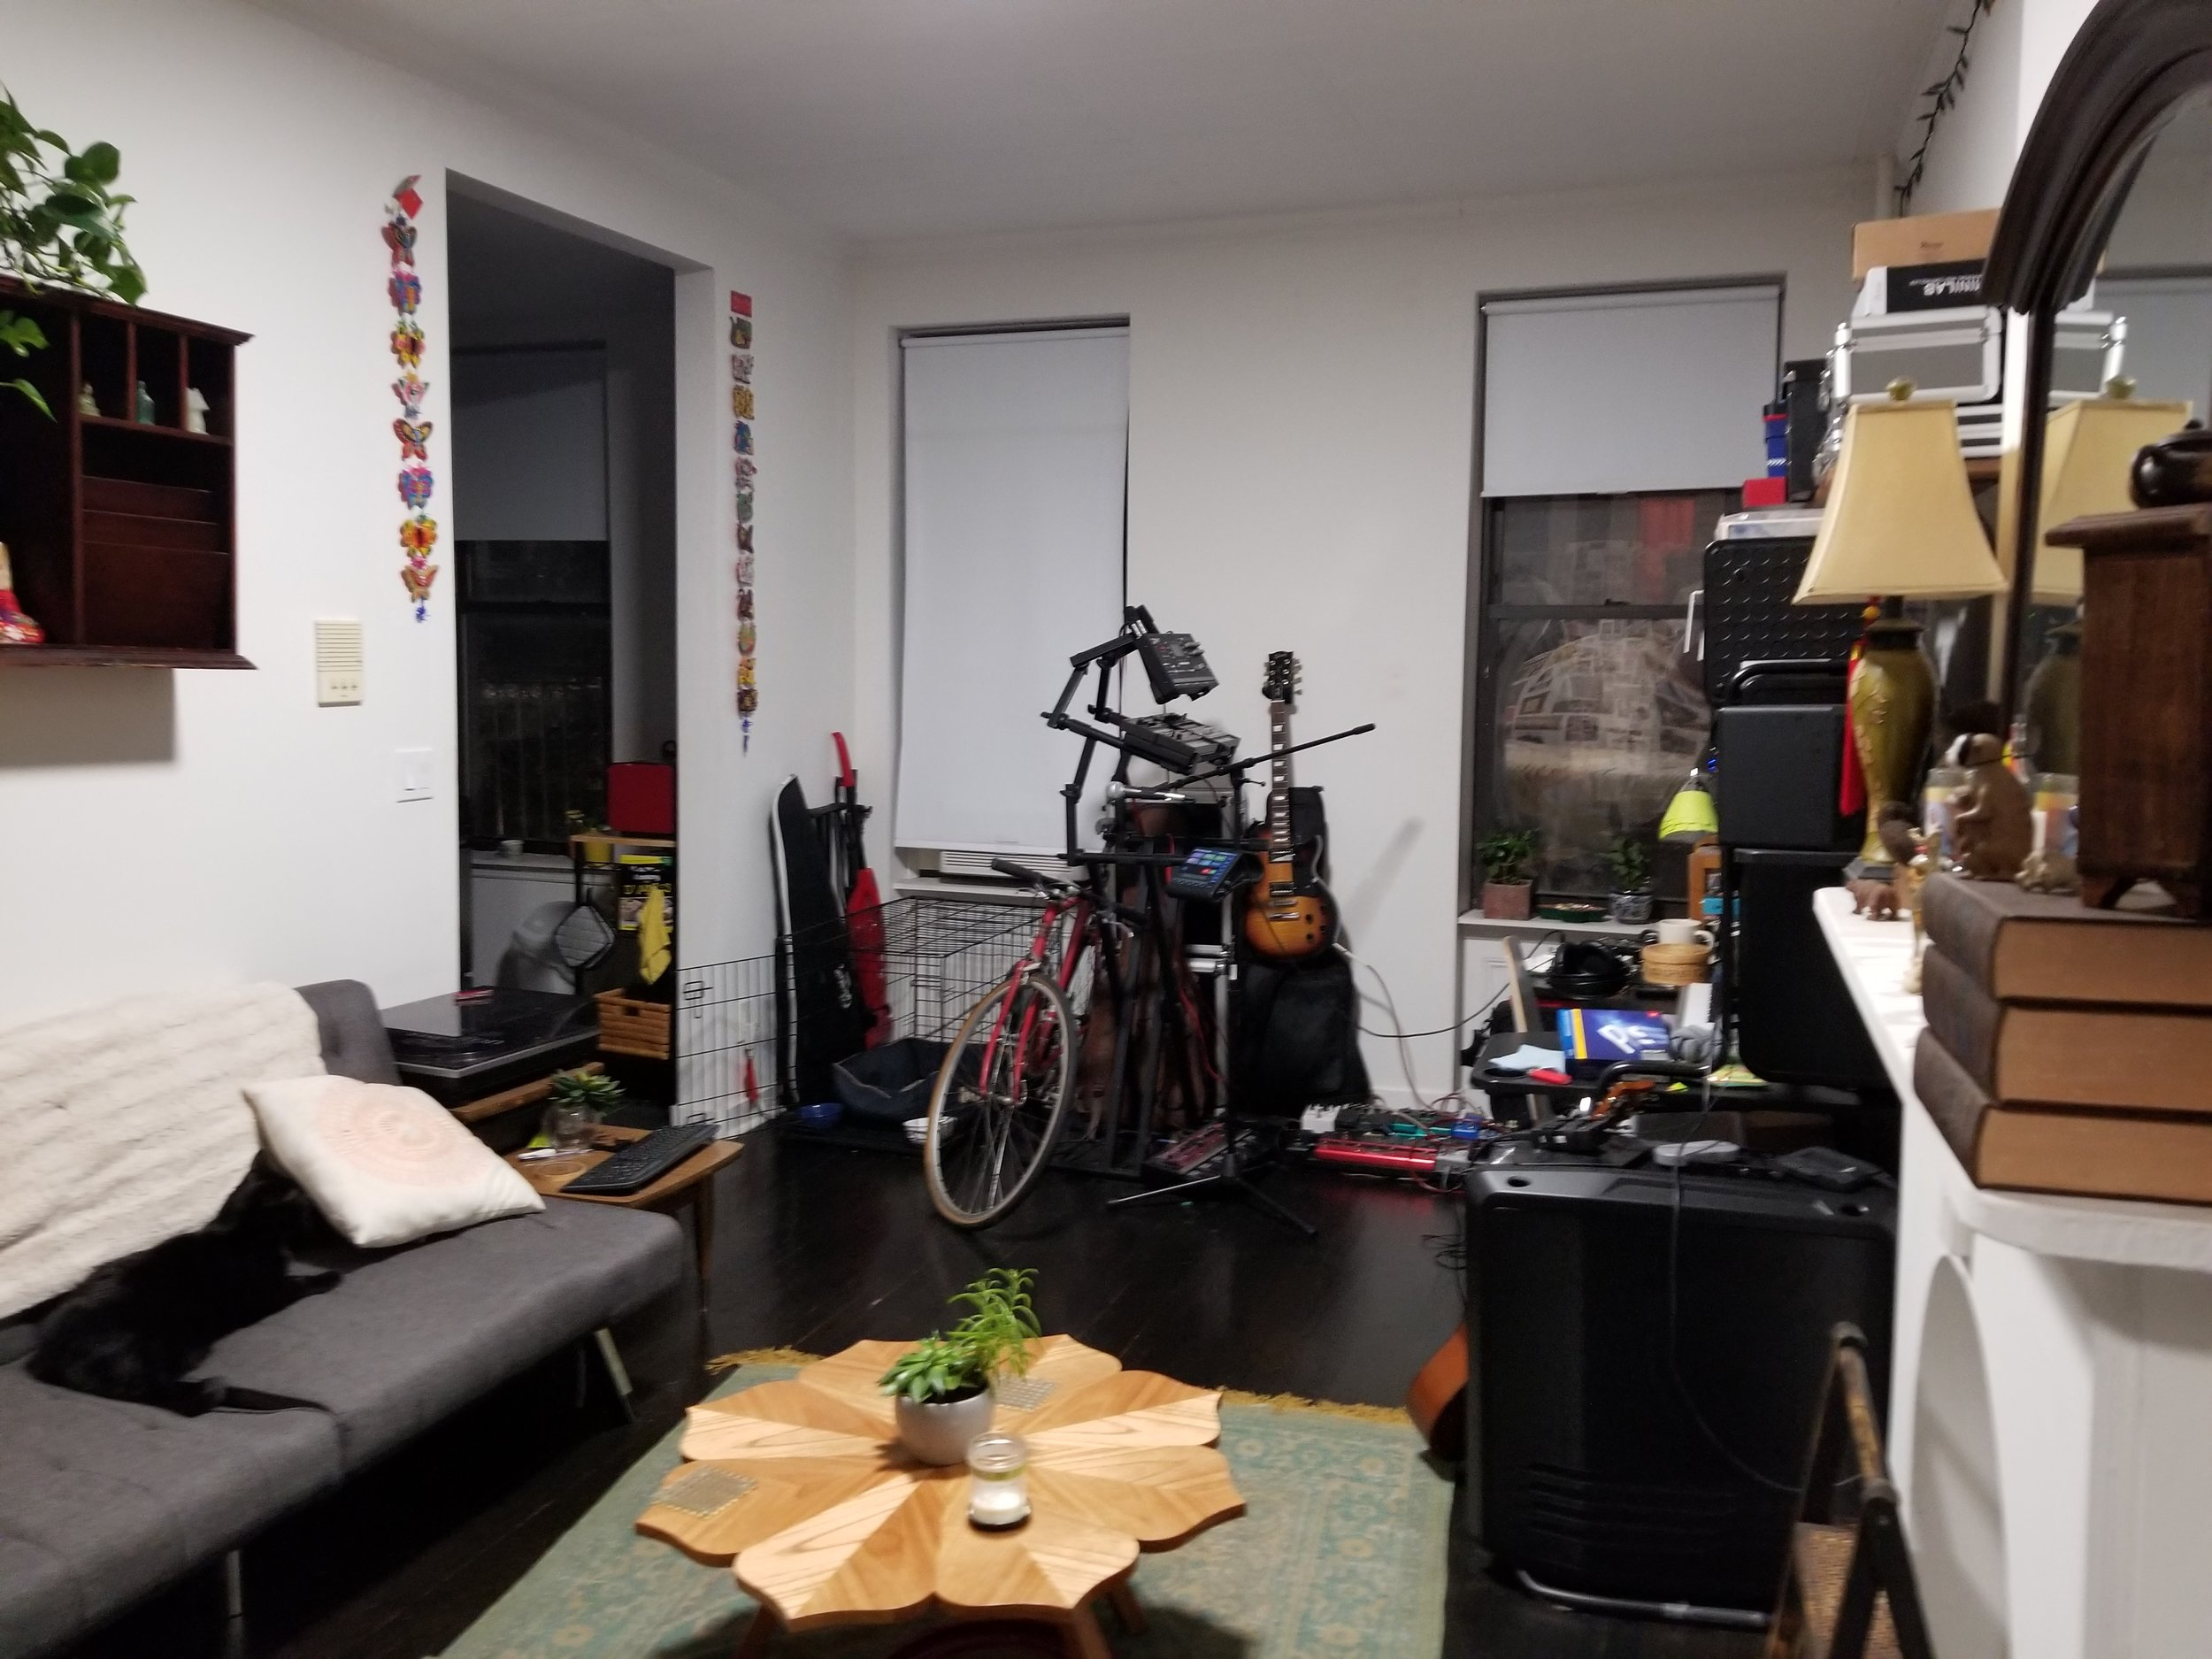 Their living space - fast forward from empty to being cozy and unpacked.